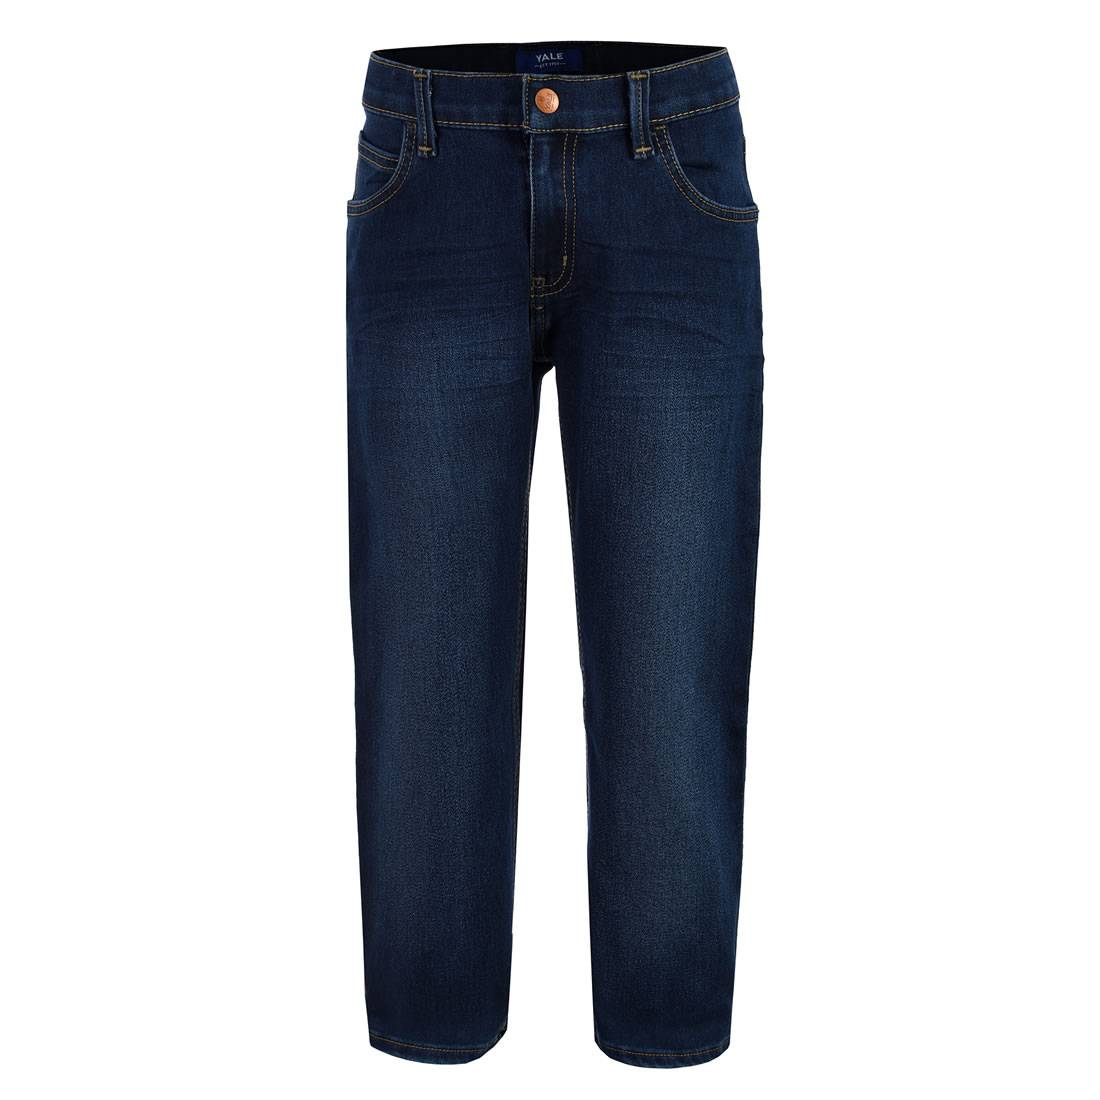 021403206918-01-Jeans-Boys-Boot-Cut-Hand-Sand-Whiskers-Con-Elastano-Cintura-Ajustable-Stone-Wash-yale